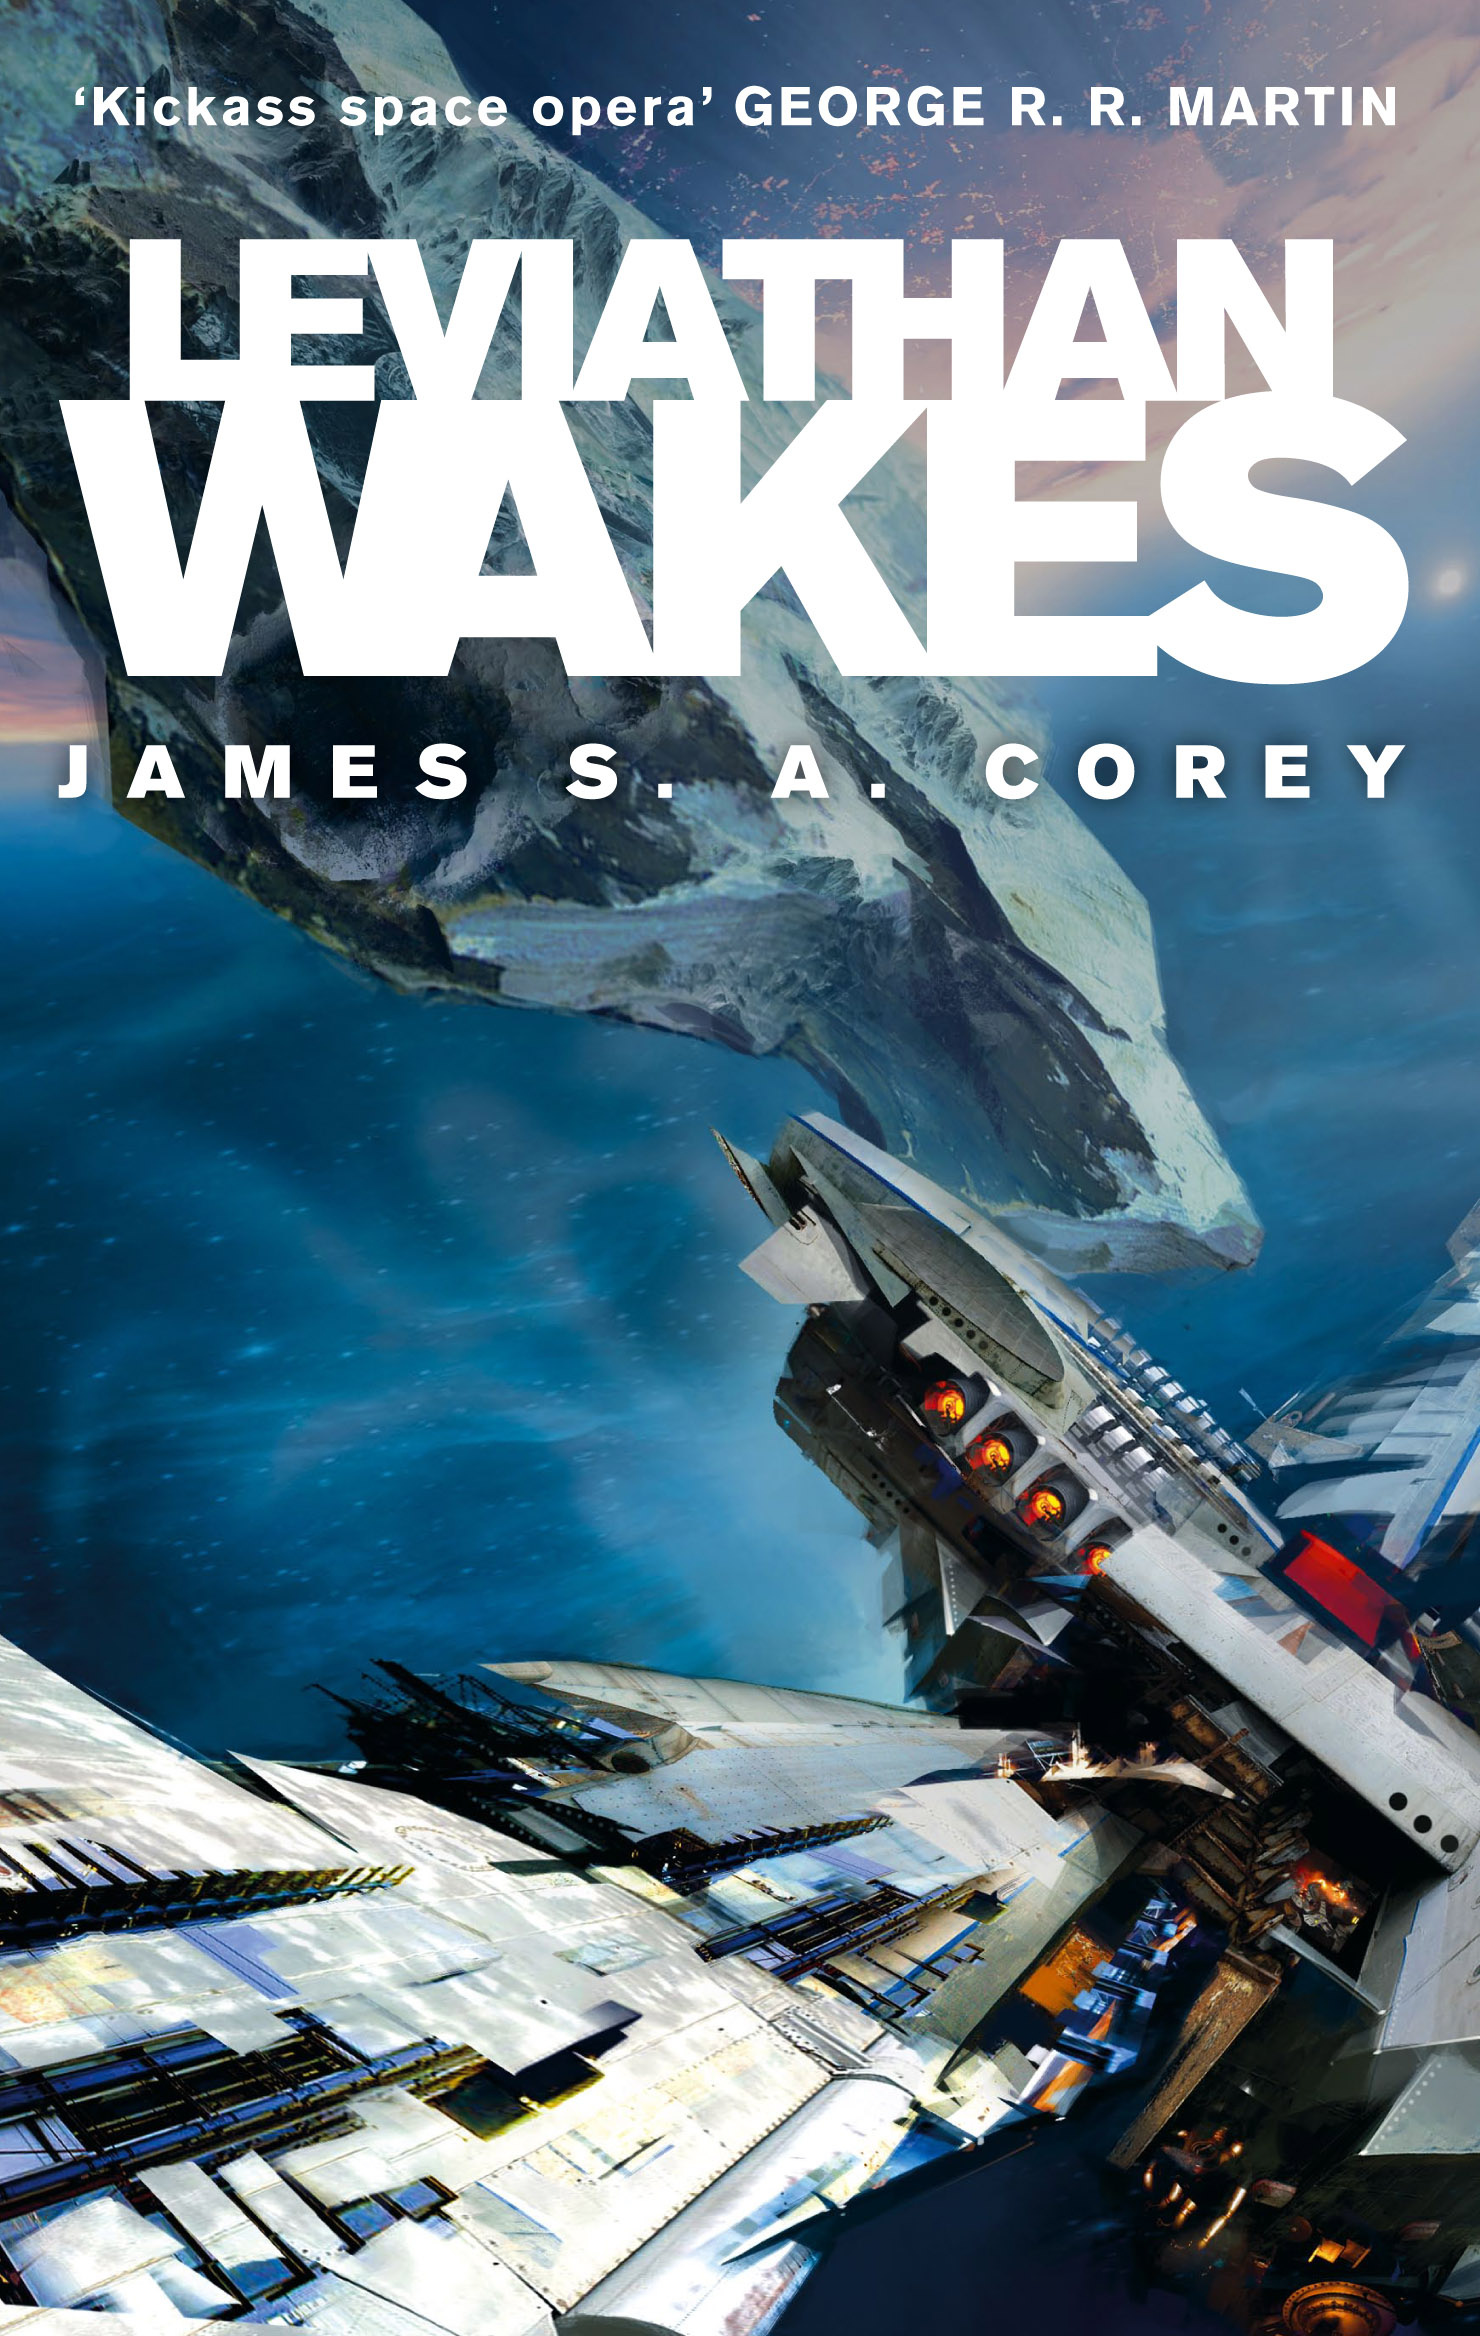 Leviathan Wakes vs The Expanse